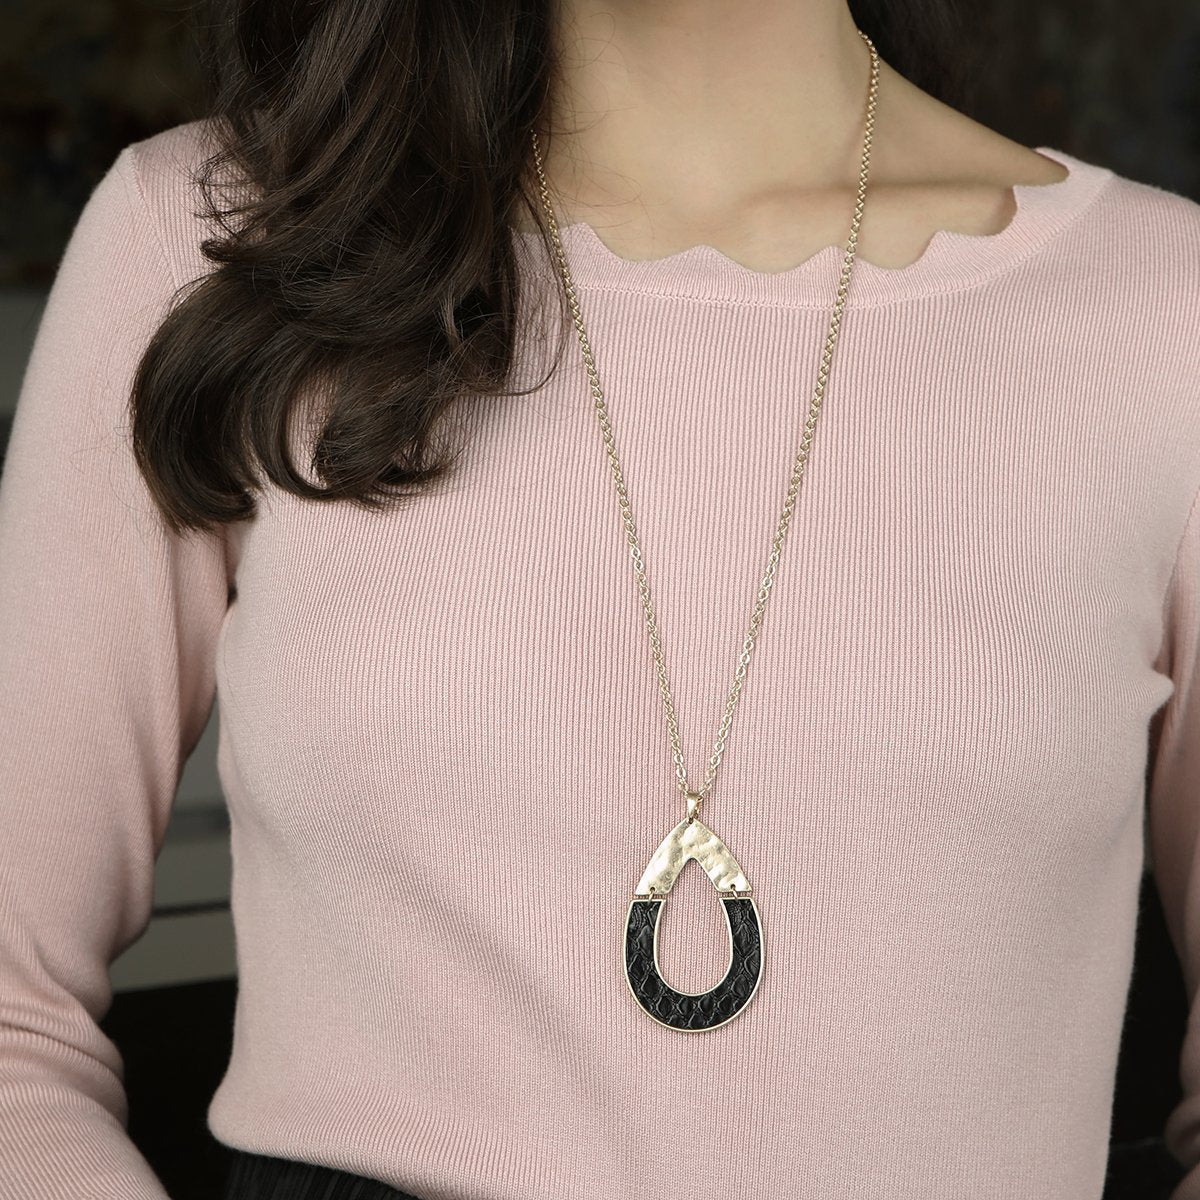 Harlow Pendant Necklace in Camel Leather